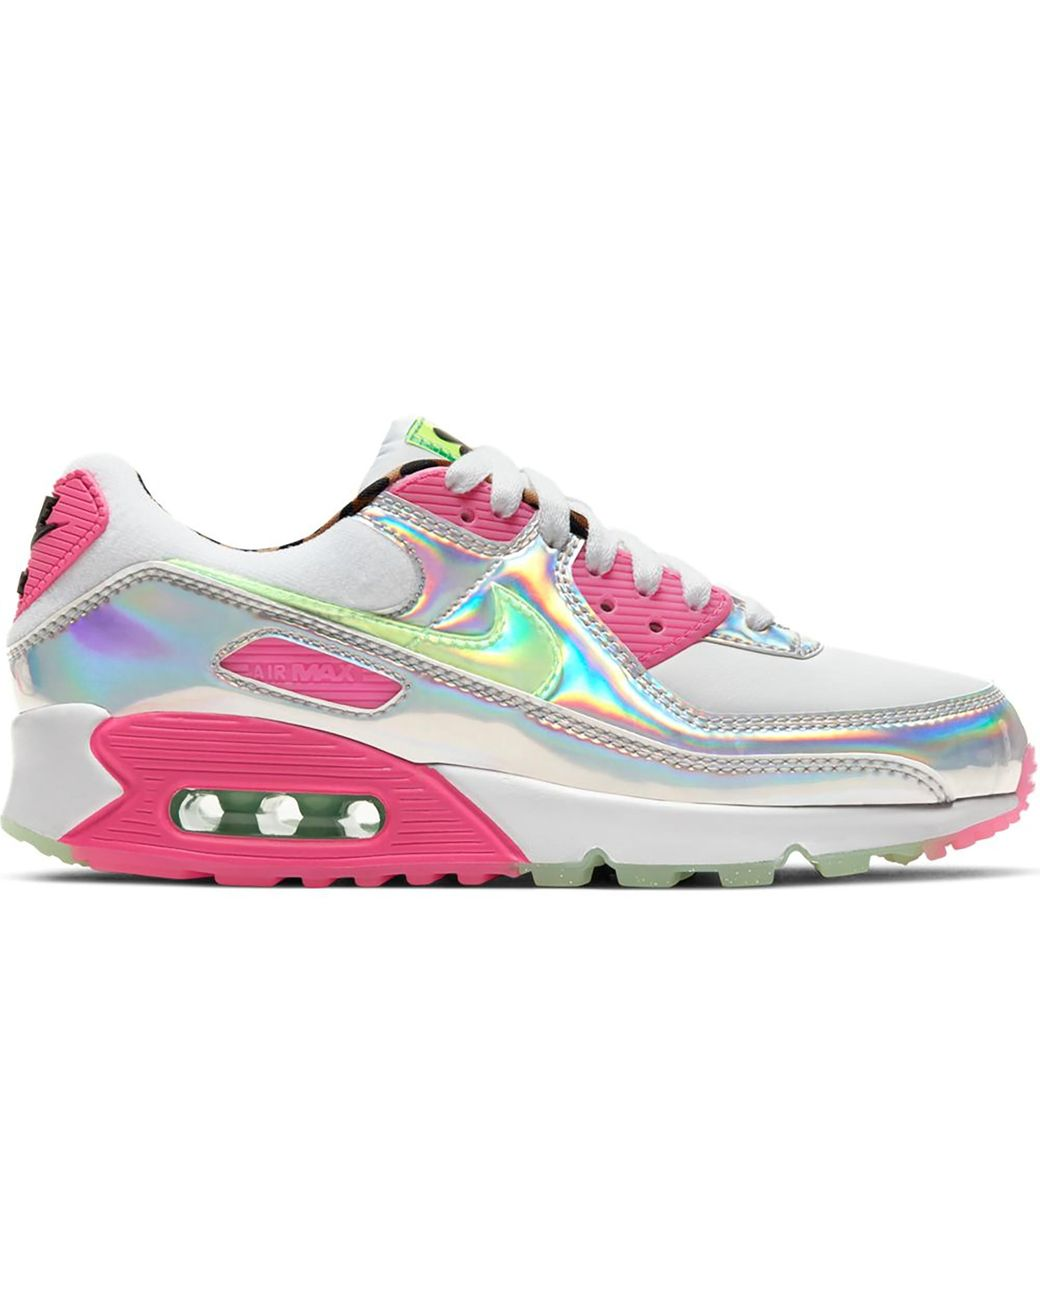 Nike Air Max 90 Lx Sneakers - Save 52% - Lyst